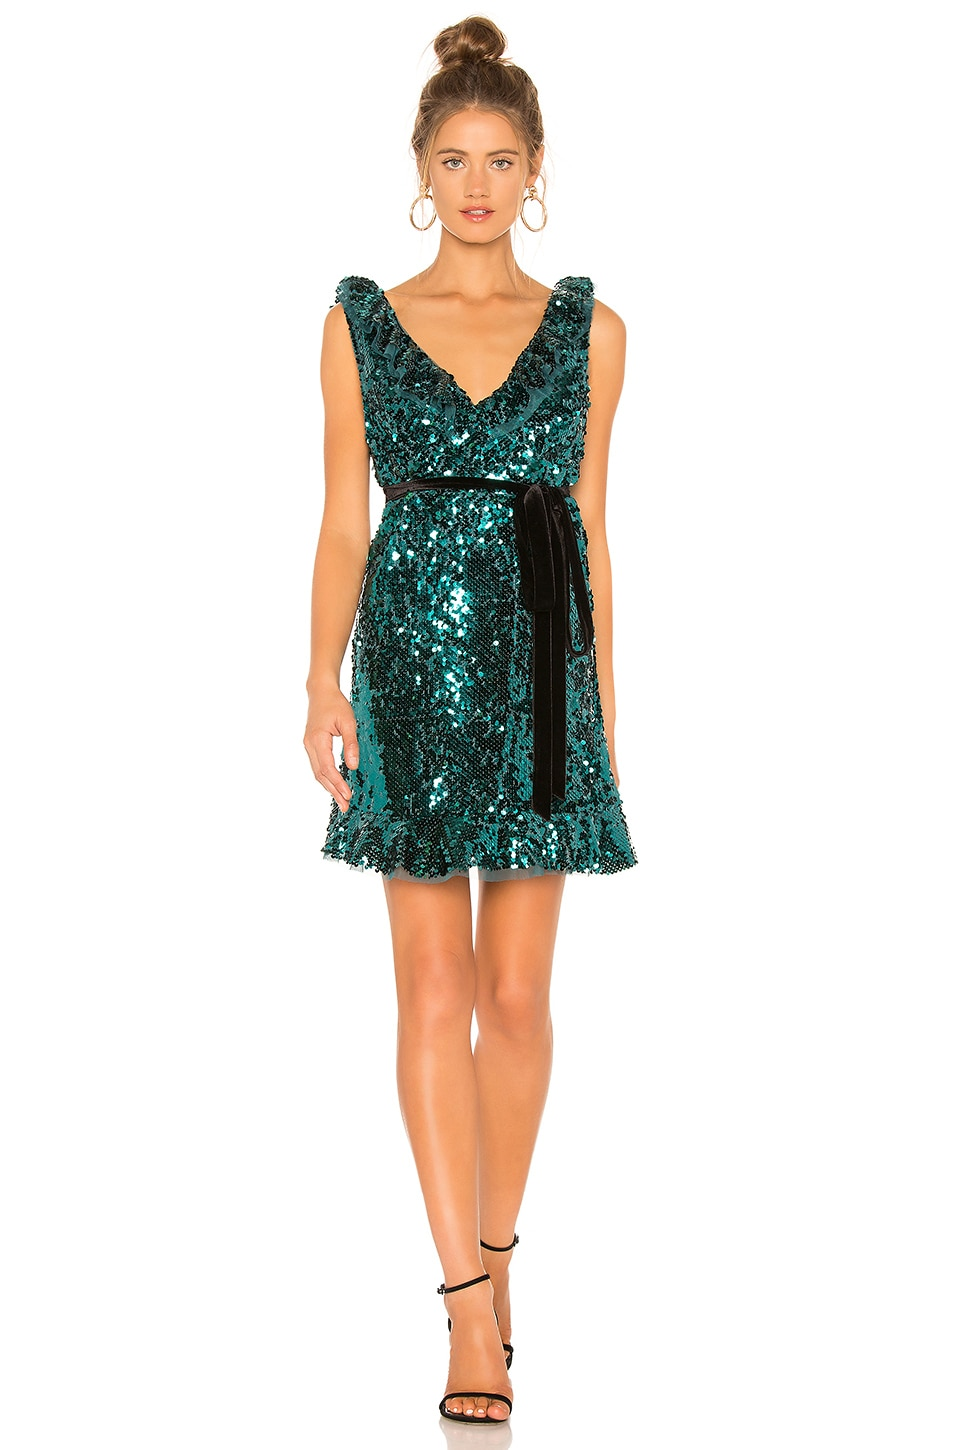 Free People Sequin Siren Mini Dress in Green